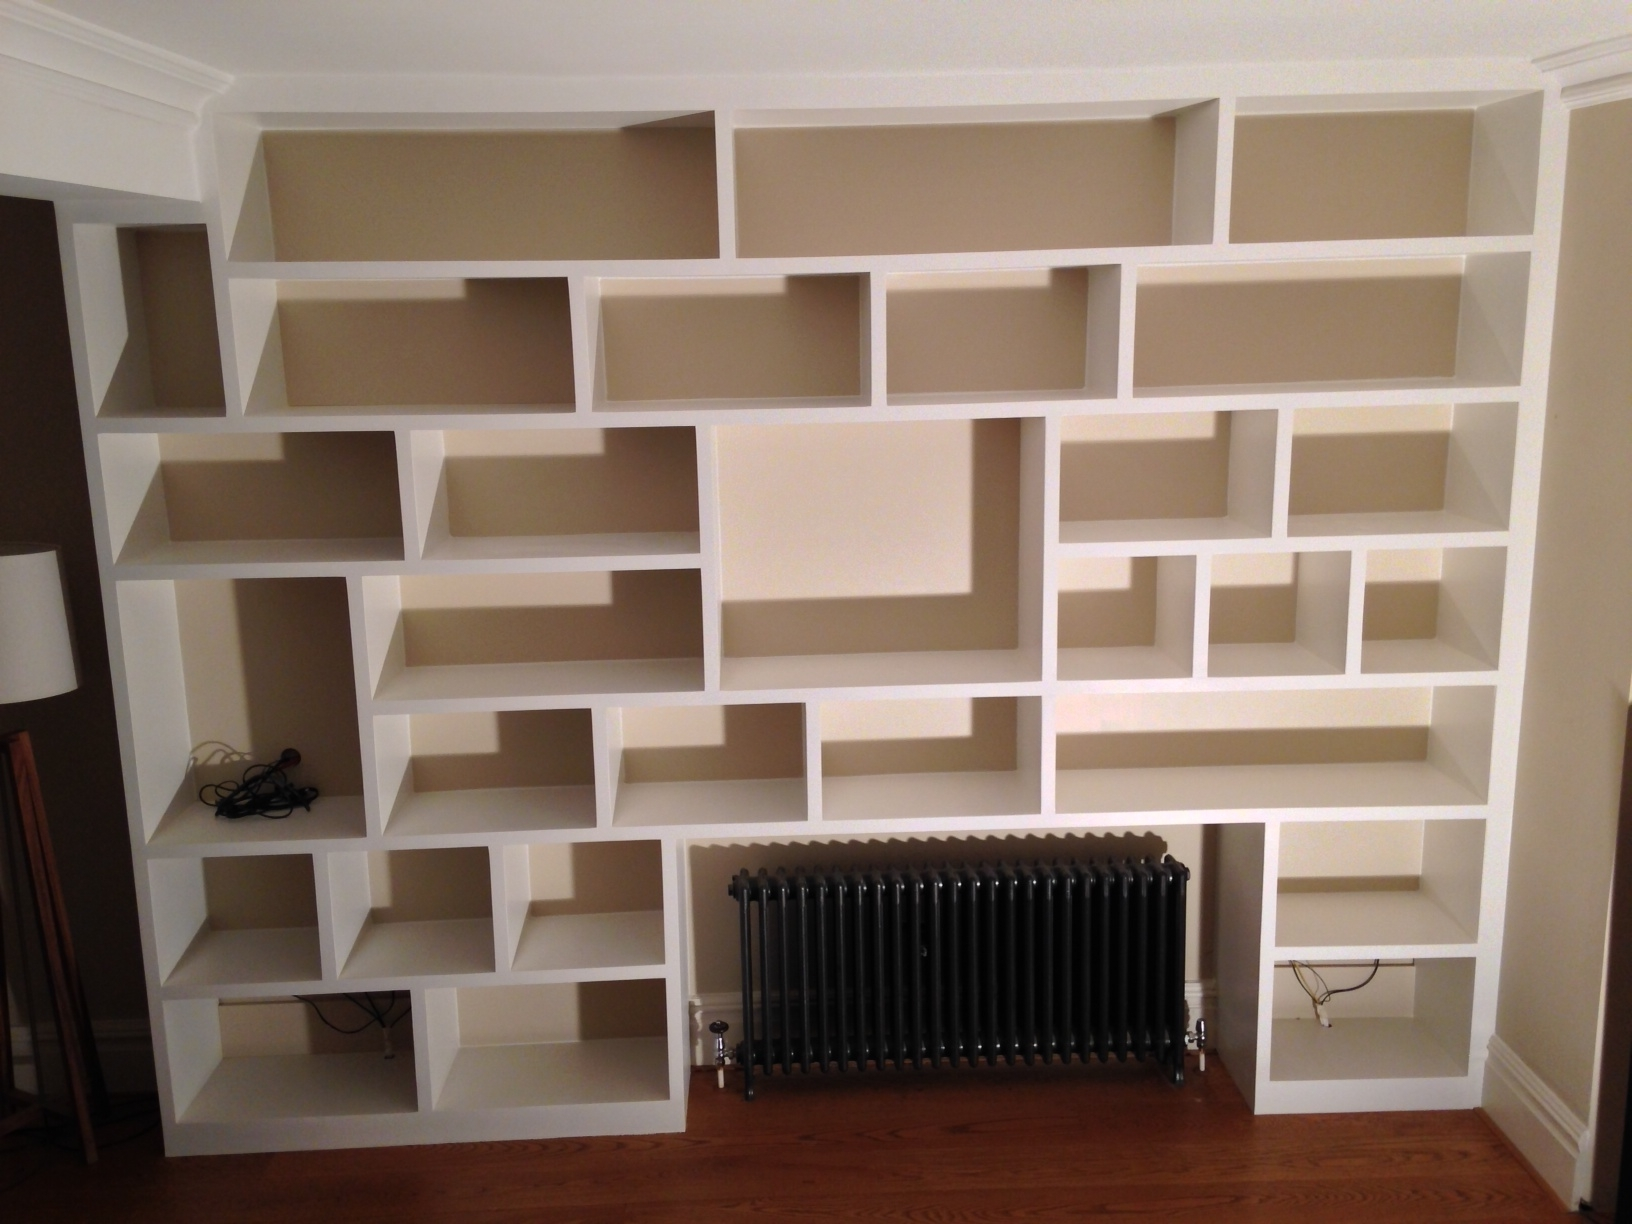 Fashionable London Custom Carpenters With Regard To Bespoke Shelving (View 11 of 15)